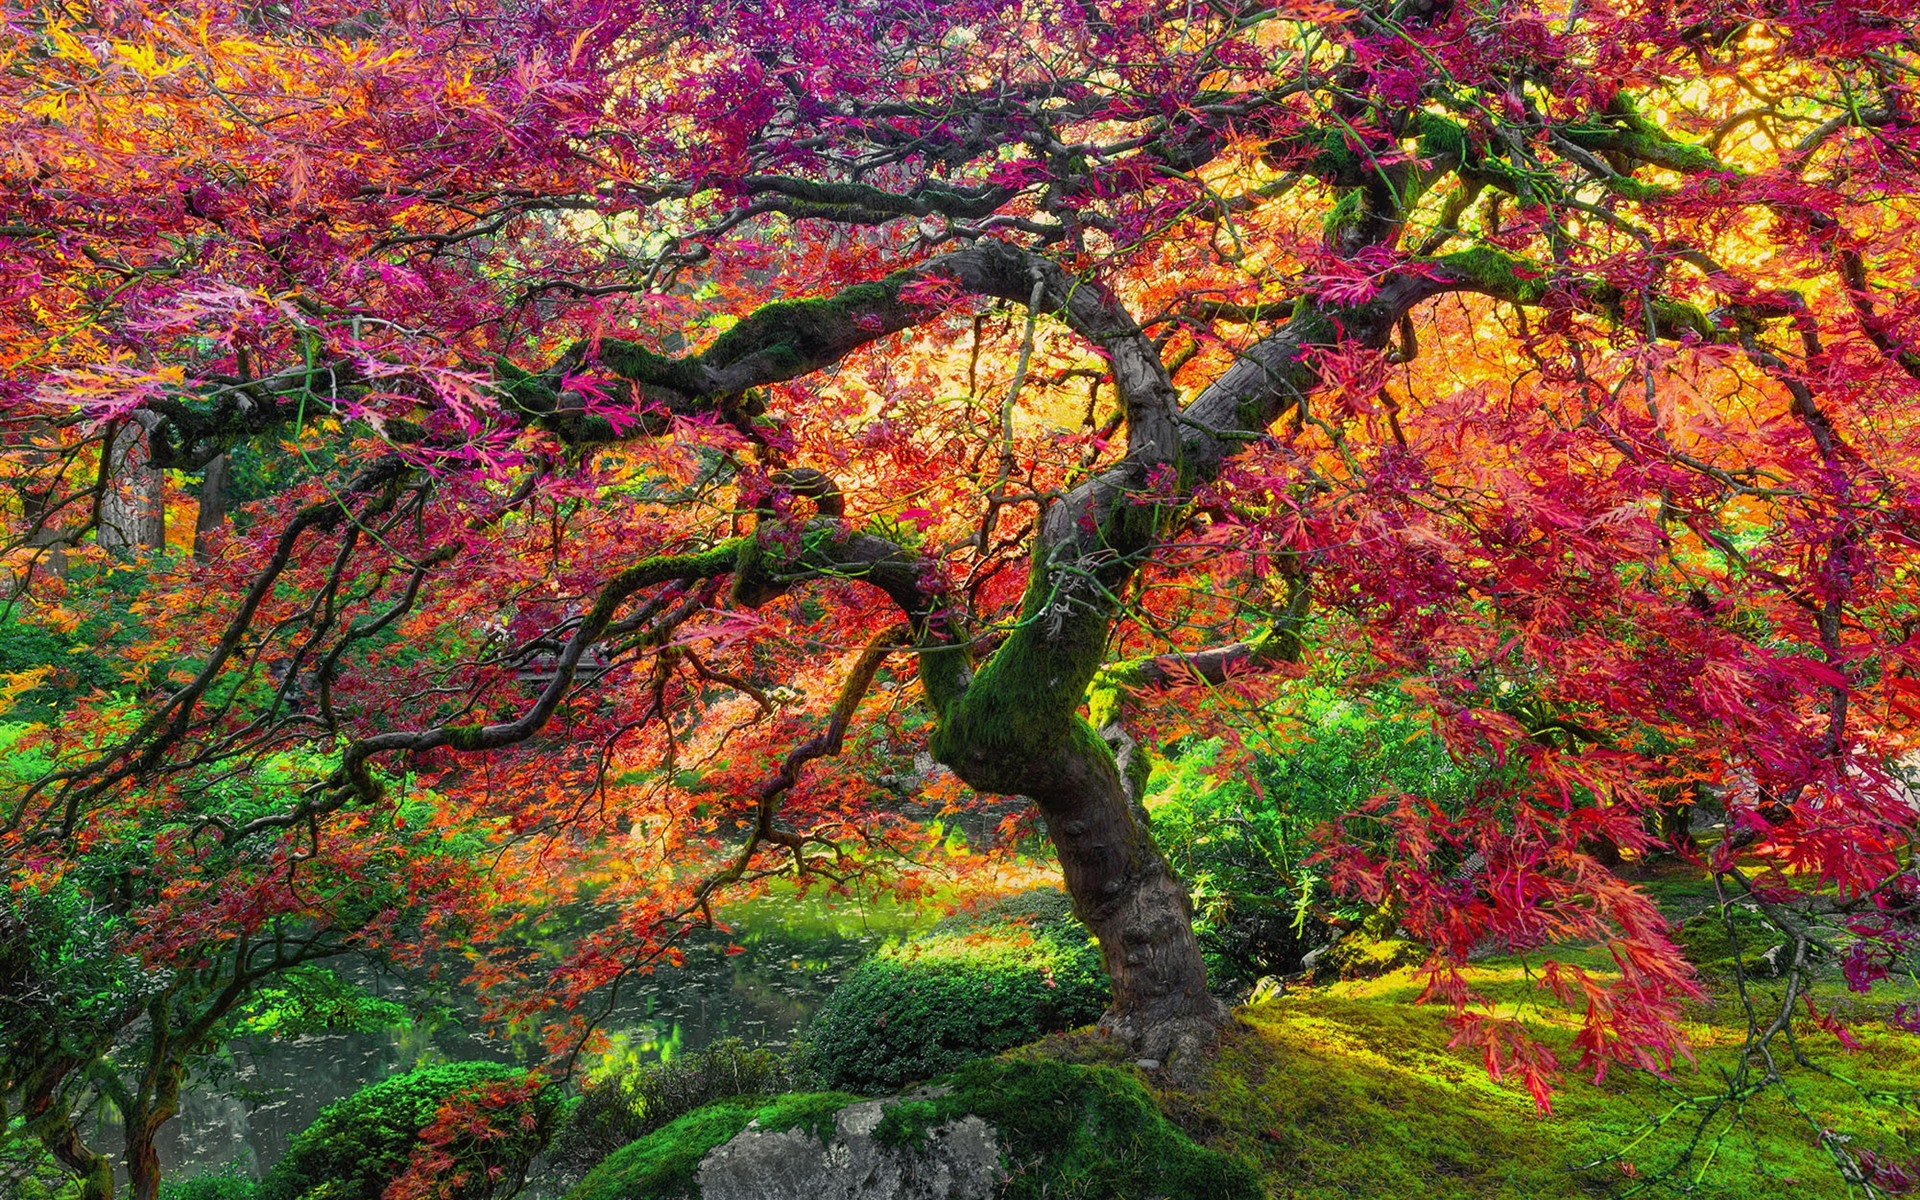 Wallpaper Maple Tree Red Leaves Autumn 1920x1200 Hd